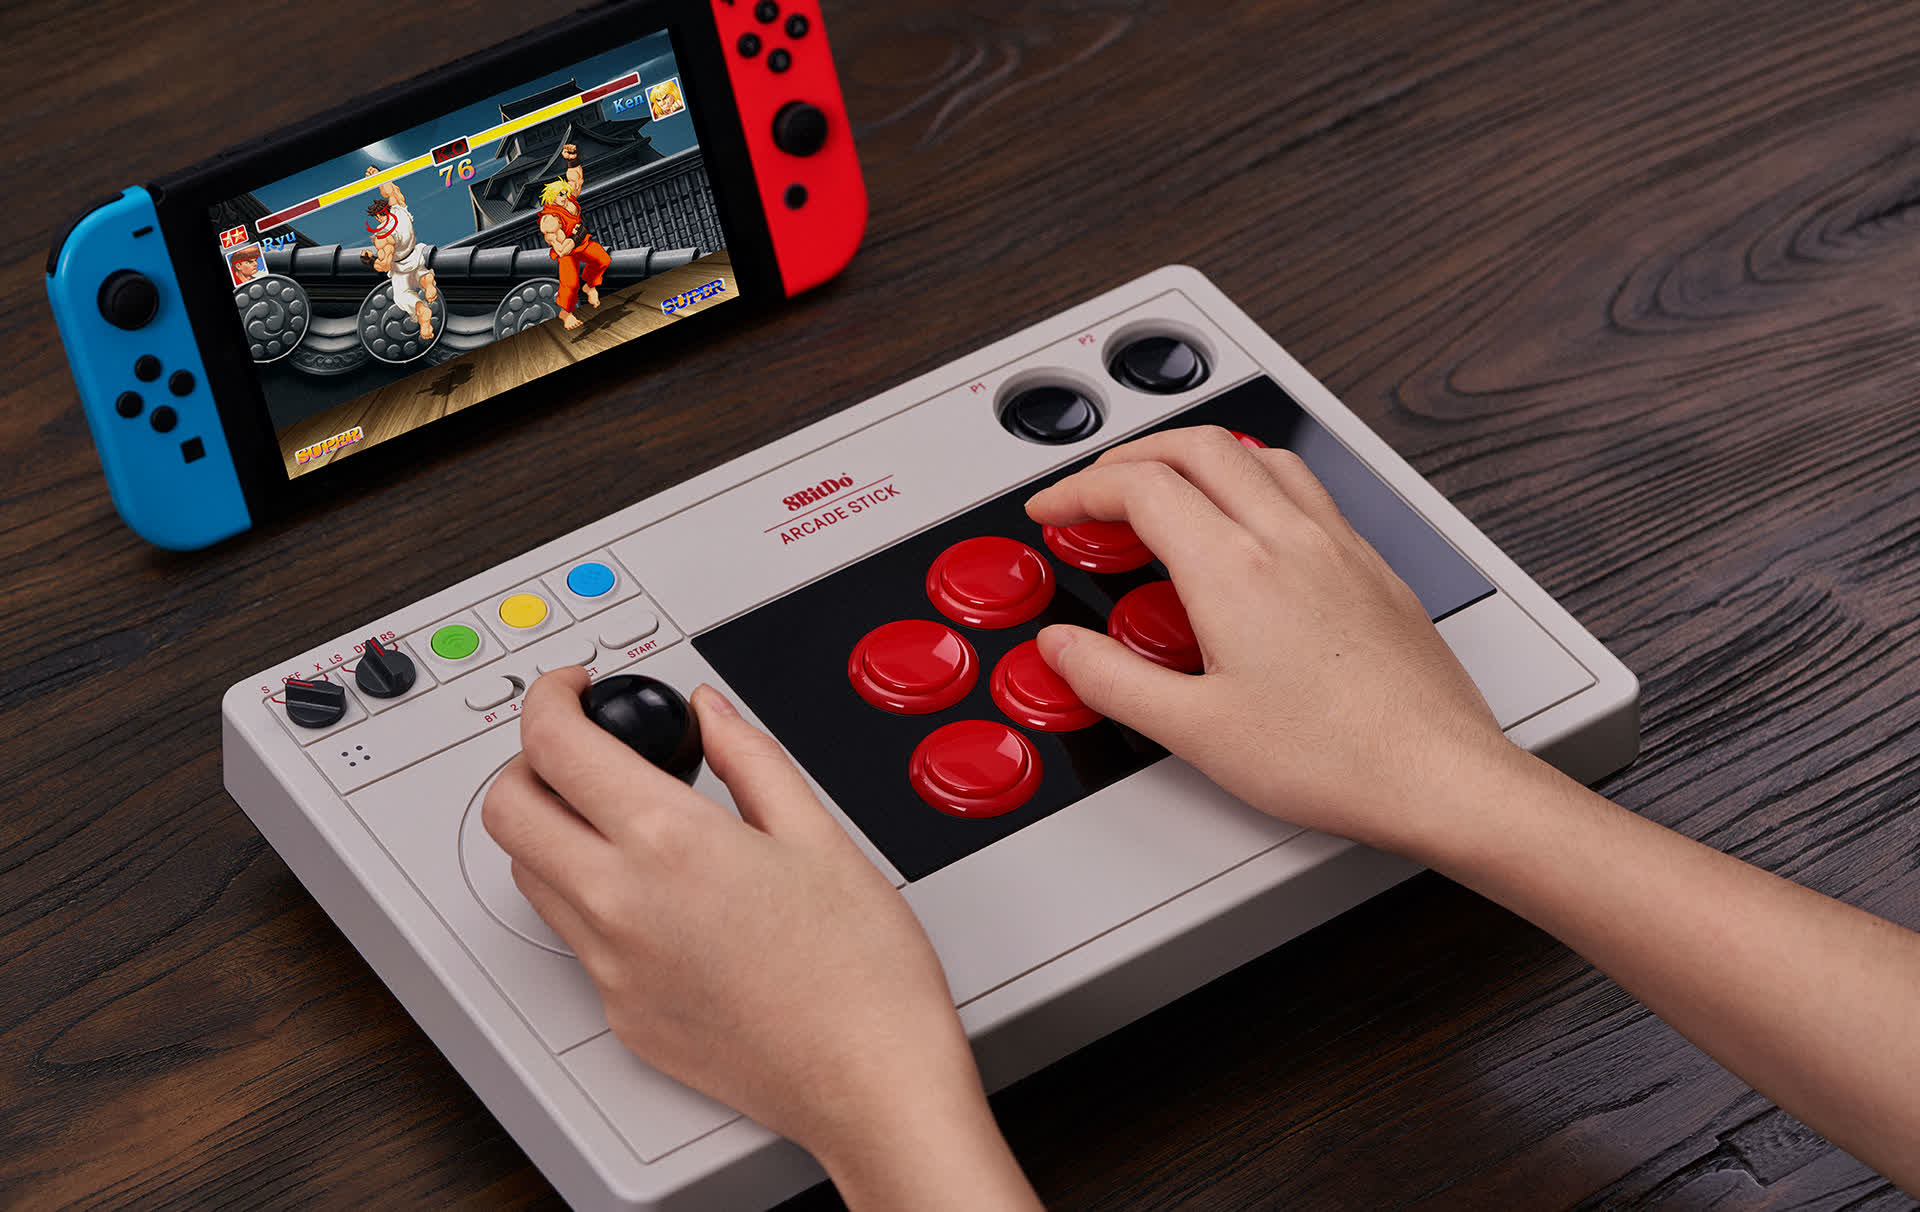 8BitDo is making a moddable arcade gaming stick for PC and Switch